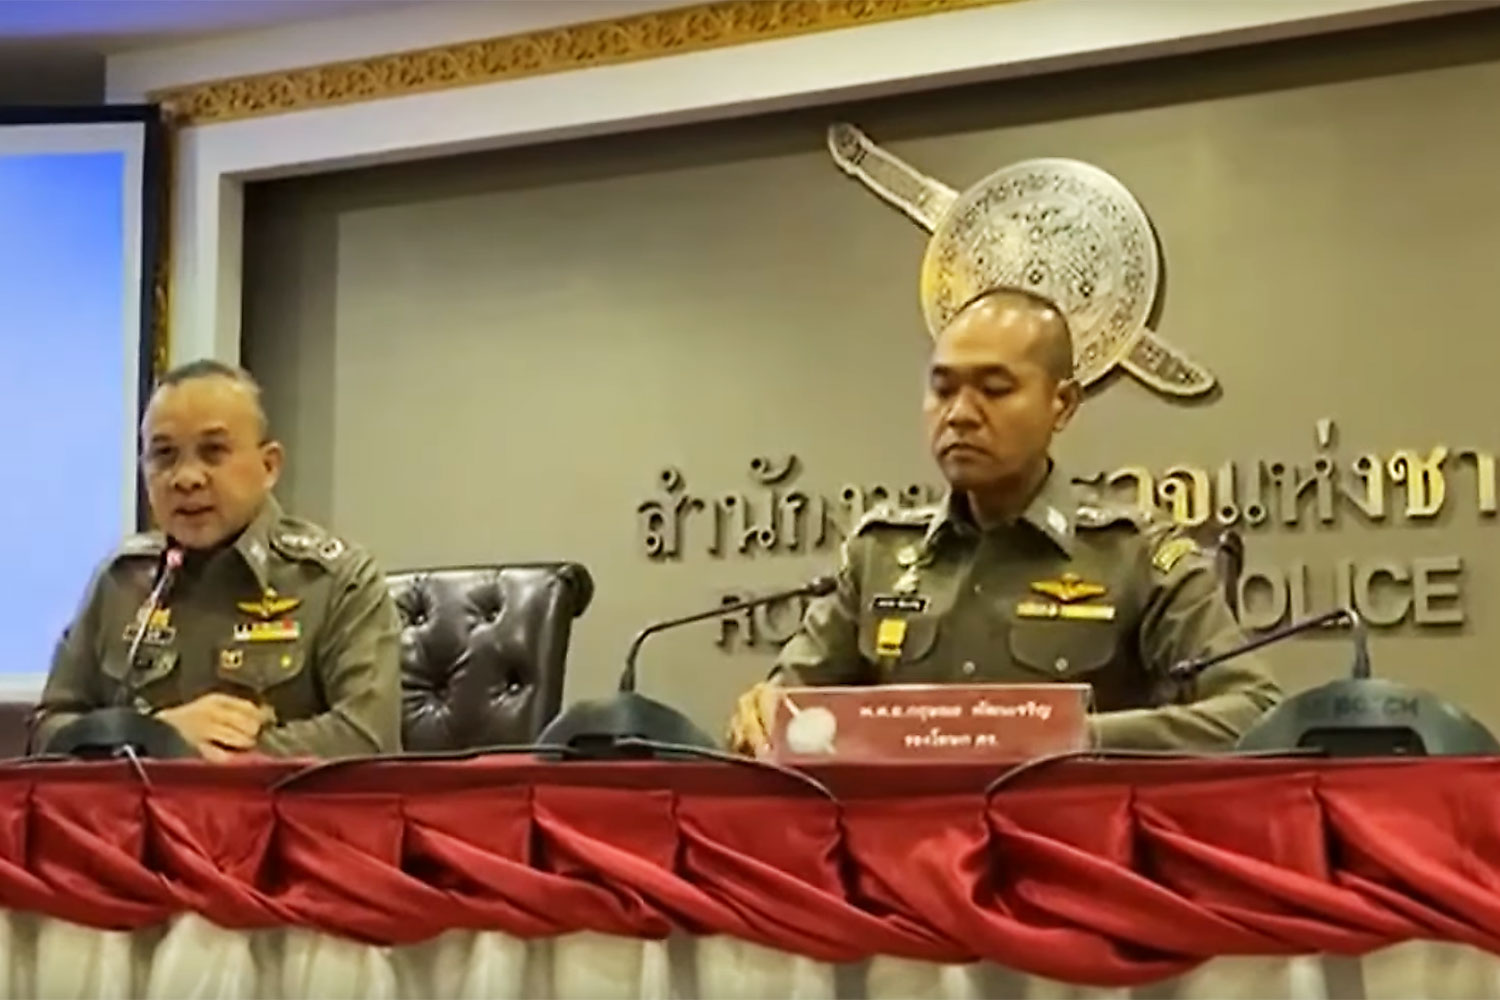 Police spokesman Pol Lt Gen Piya Uthayo, left, and deputy spokesman Pol Col Kritsana Pattanacharoen confirm all warrants for Vorayuth Yoovidhya have been revoked, at a media briefing in Bangkok on Friday. (Photo: ThaiPBS YouTube channel)